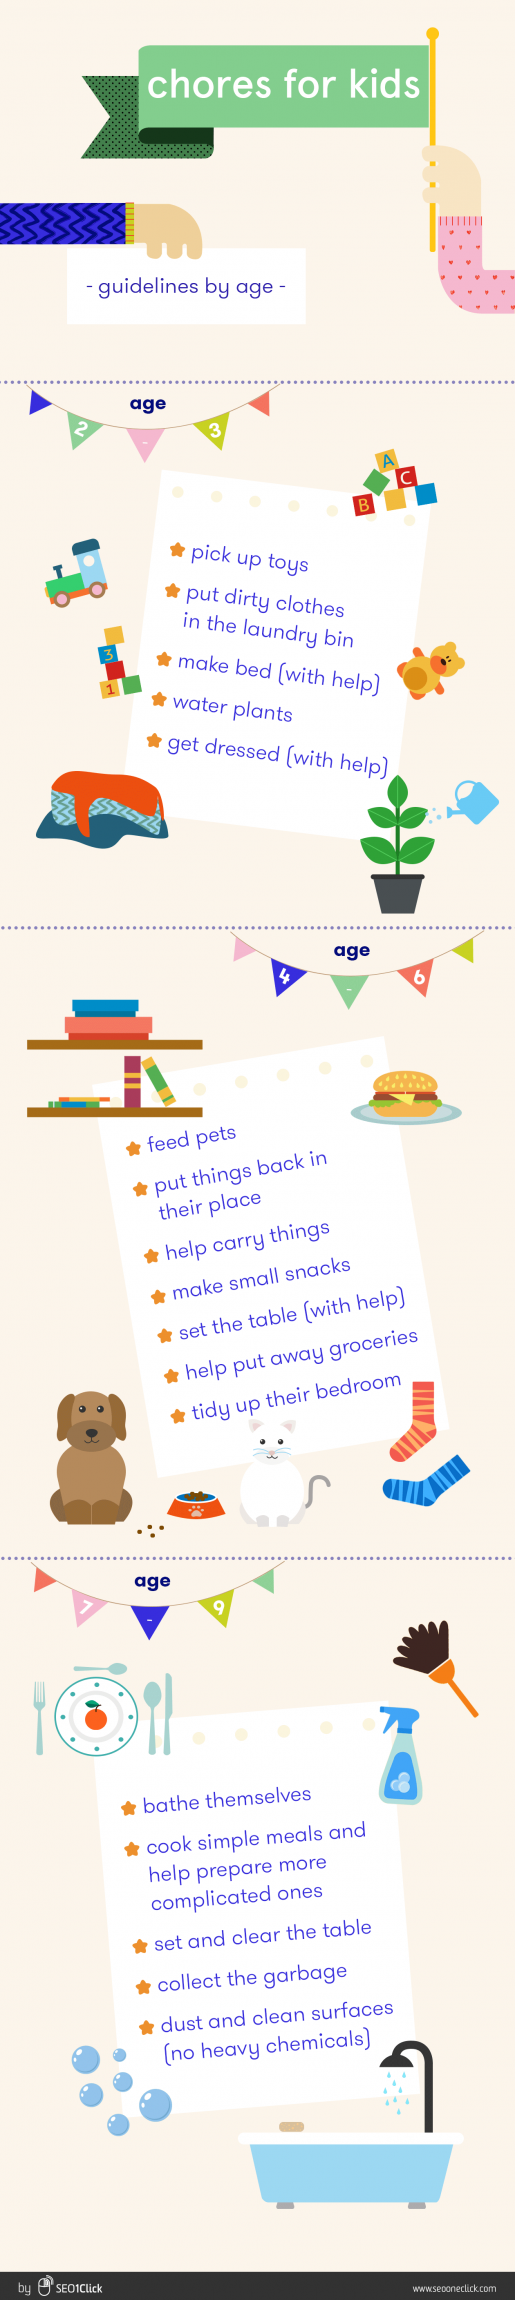 Do your children do chores? Here is a great list of chores for kids by age. Chores are a great way to encourage children to be more independent.